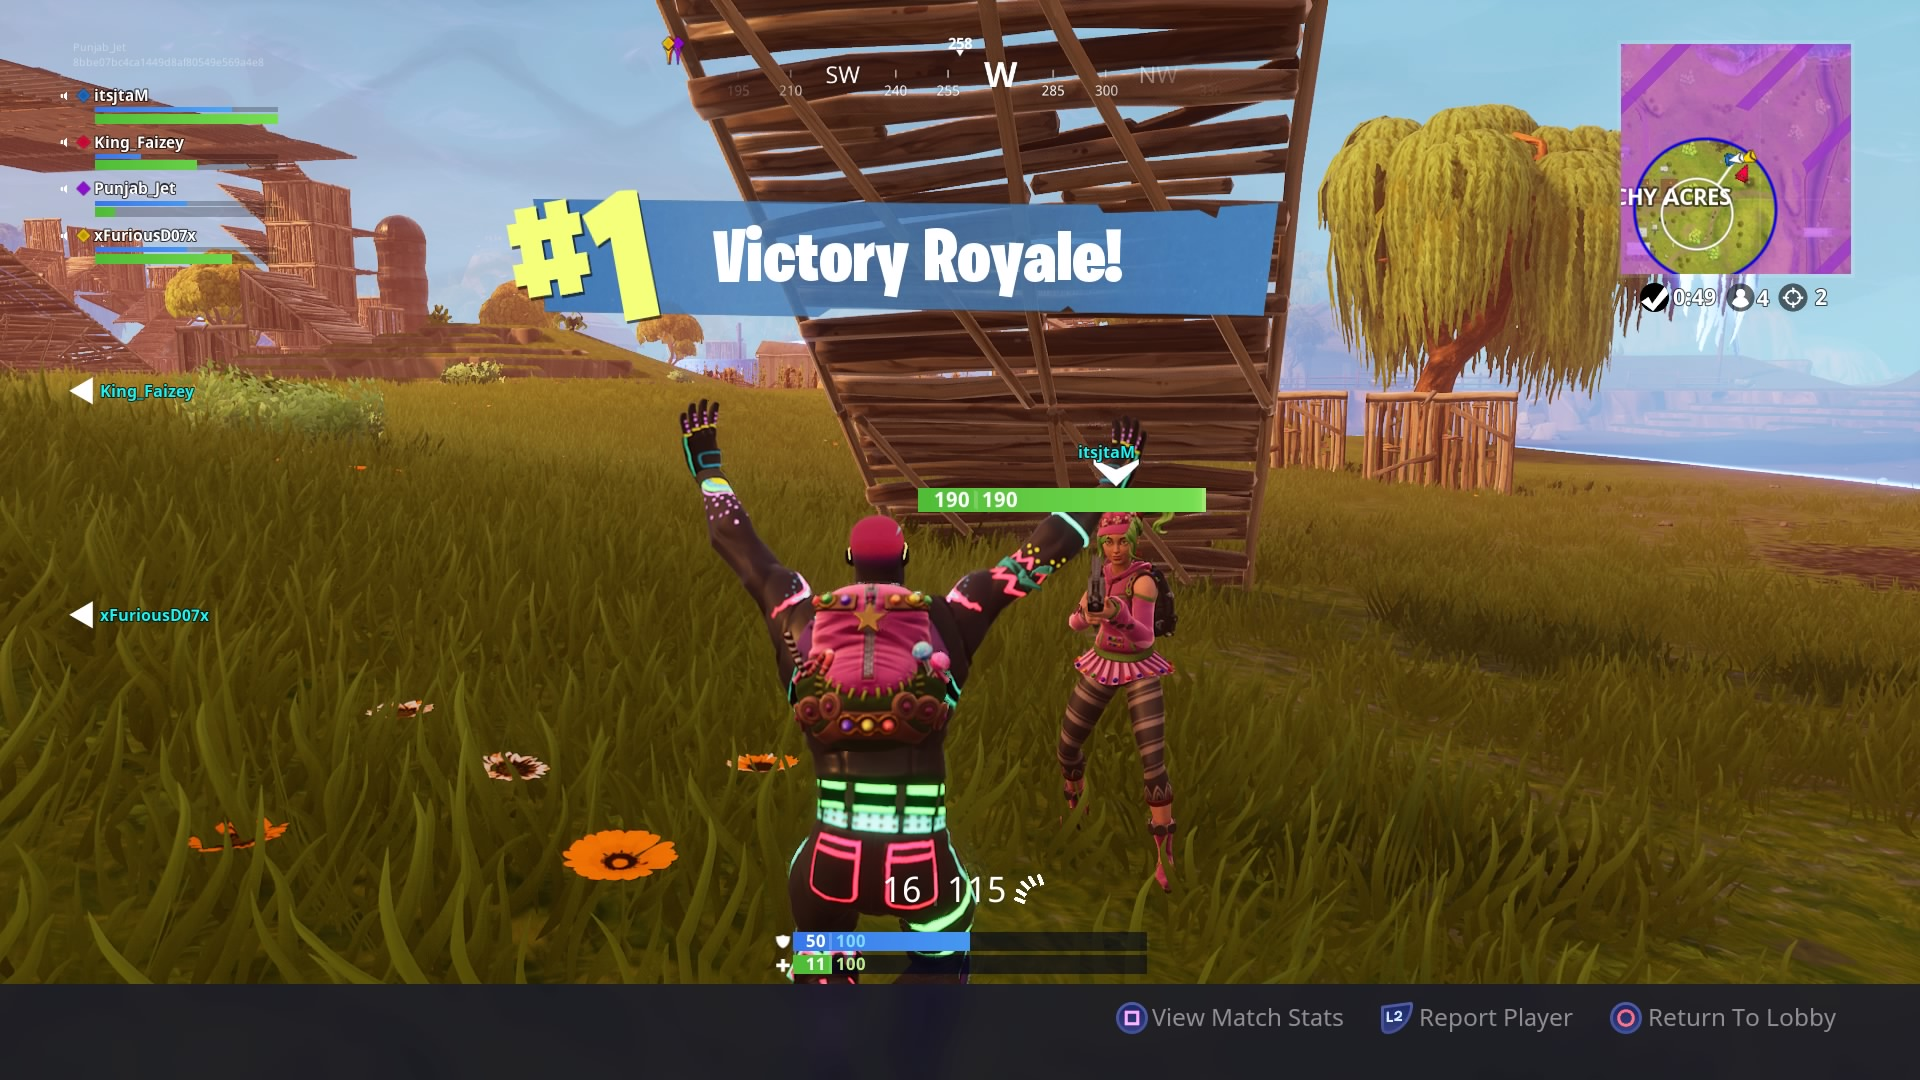 Fortnite Victory Royale Game Wallpaper Background 64478 1920x1080px